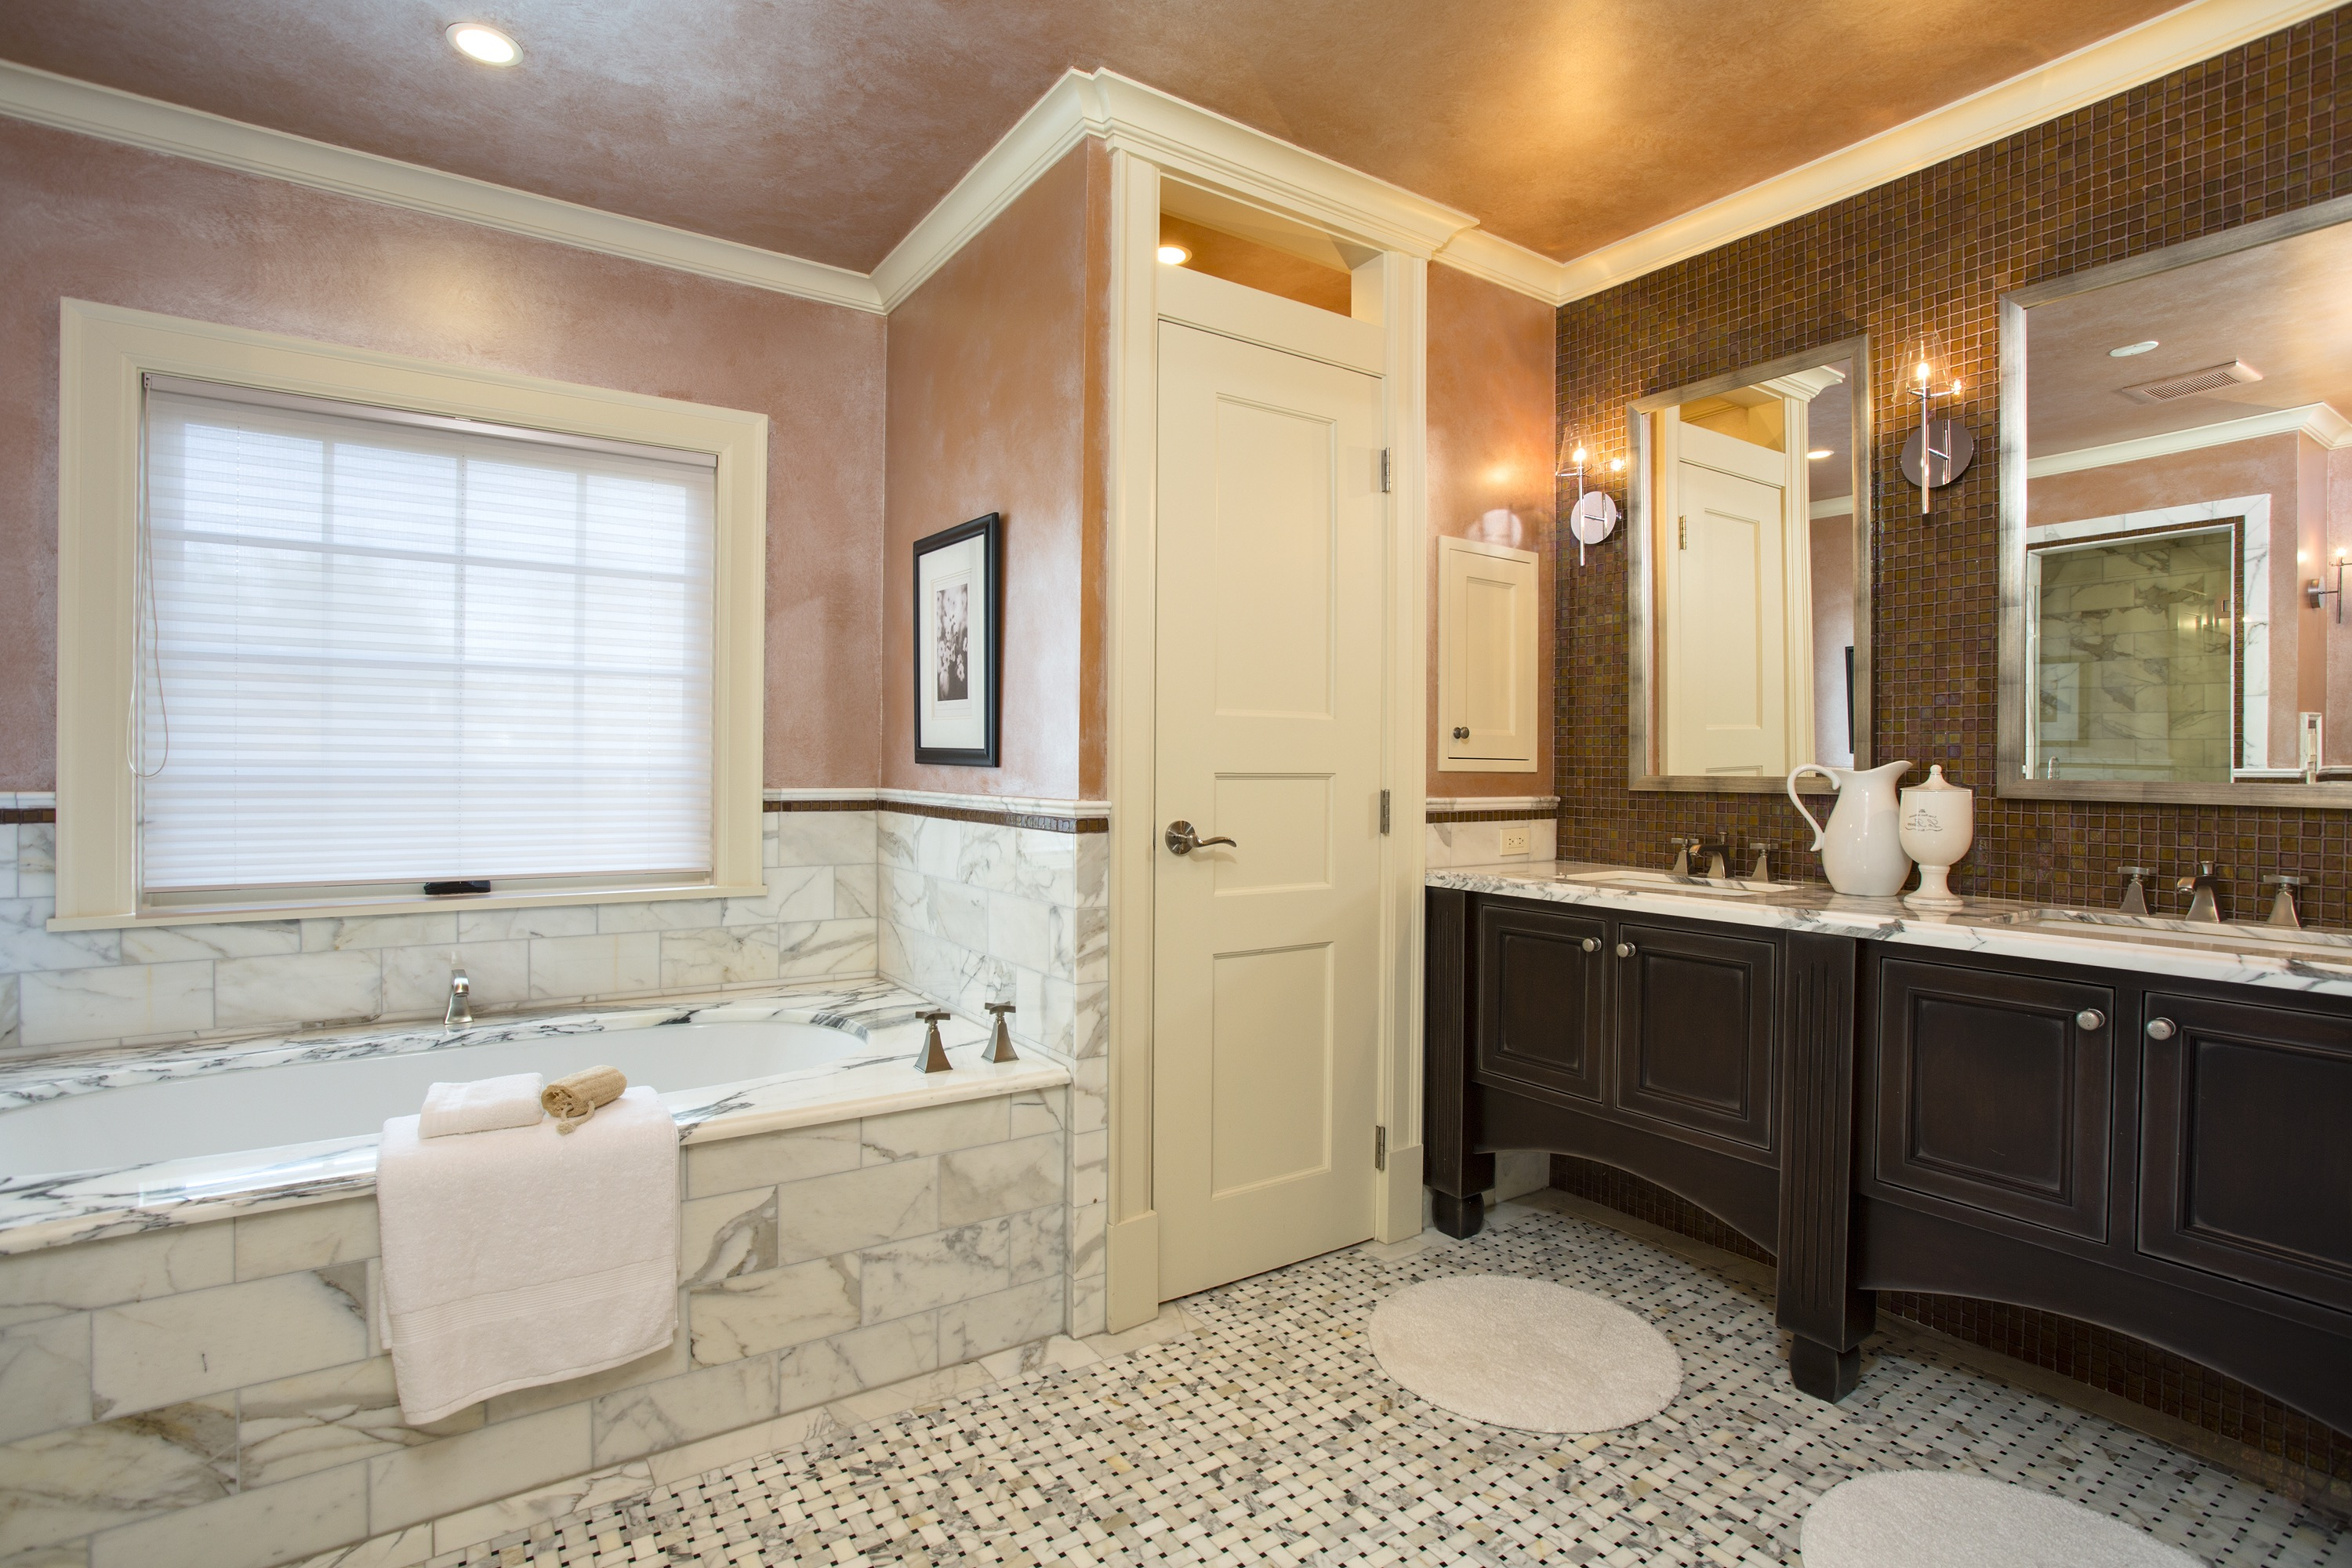 Bathroom classic bathroom interior design in elegant look for Neoclassical bathroom designs